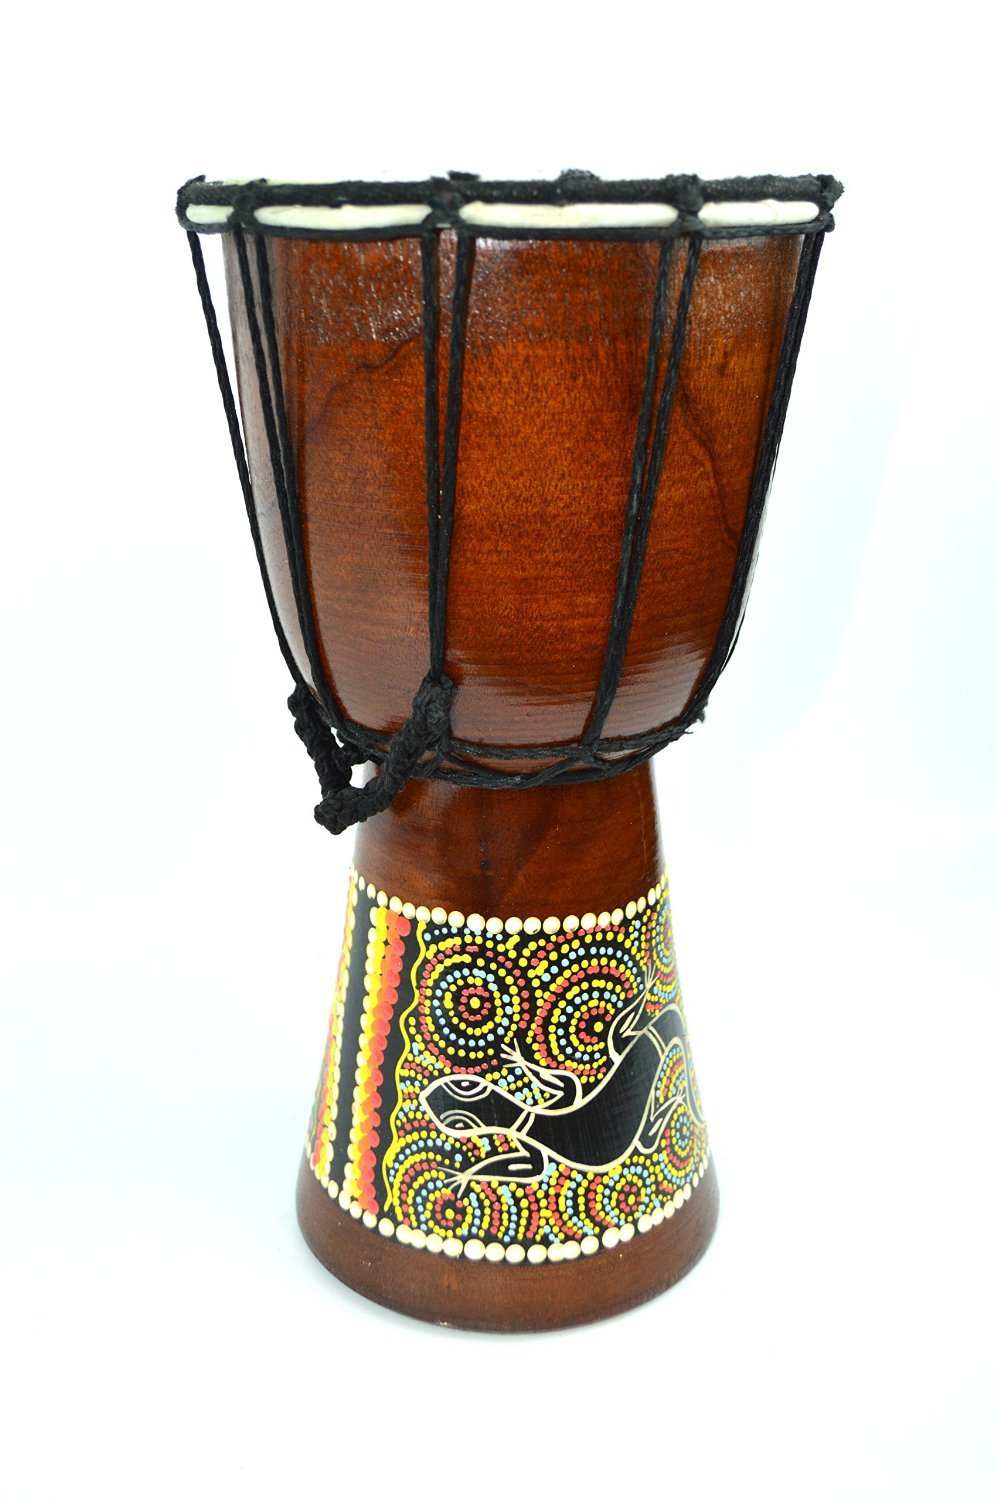 DJEMBE DRUM BONGO HAND CARVED AFRICAN ABORIGINAL DOT ART DESIGN by Bethlehem Gifts TM (6 inches) by Bethlehem Gifts TM